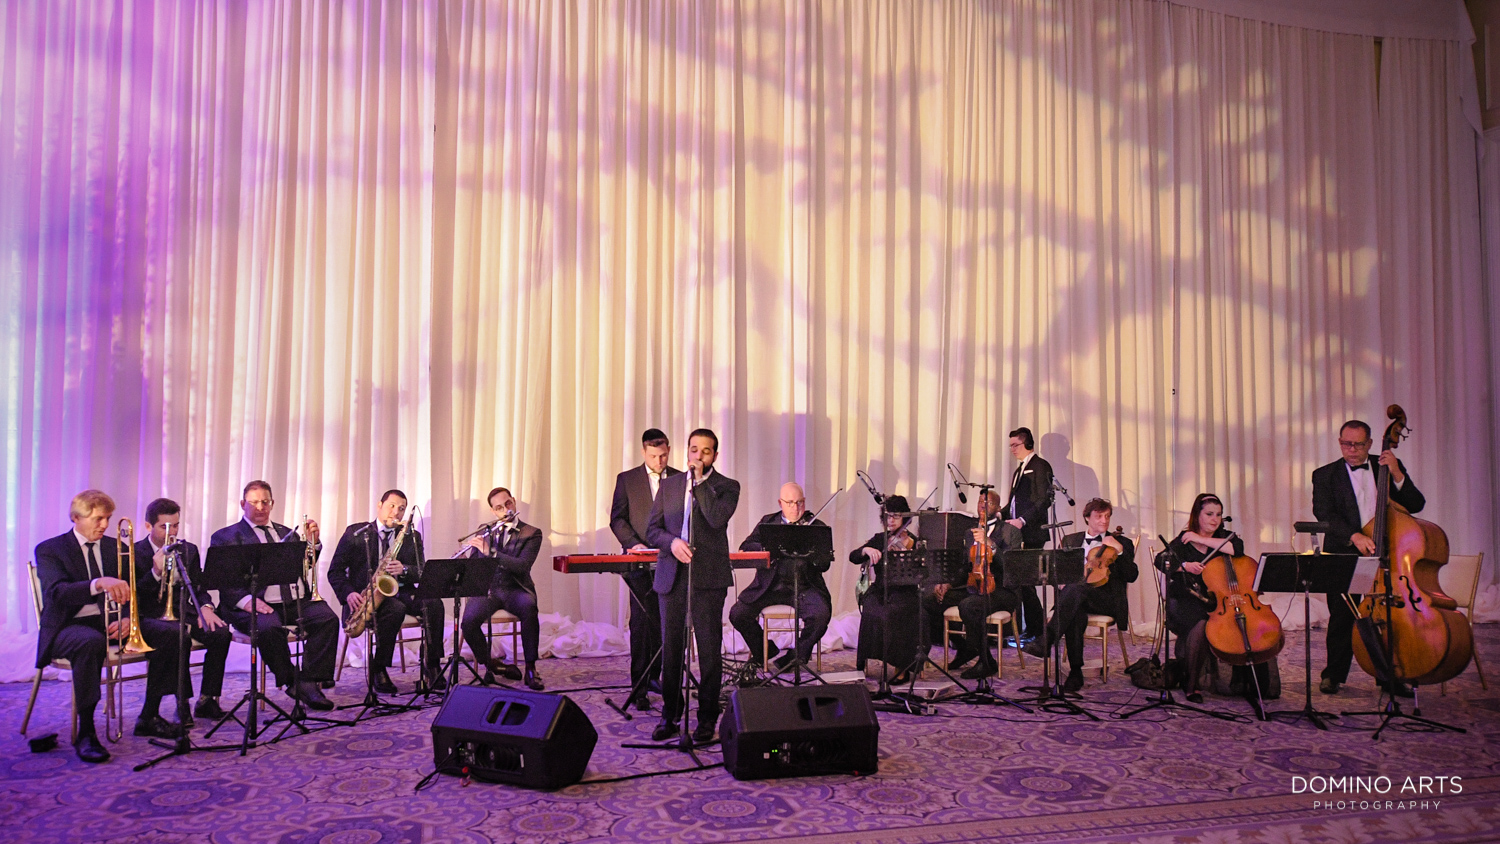 Full Orchestra at Modern Jewish wedding ceremony pictures at Trump national Doral in South Florida